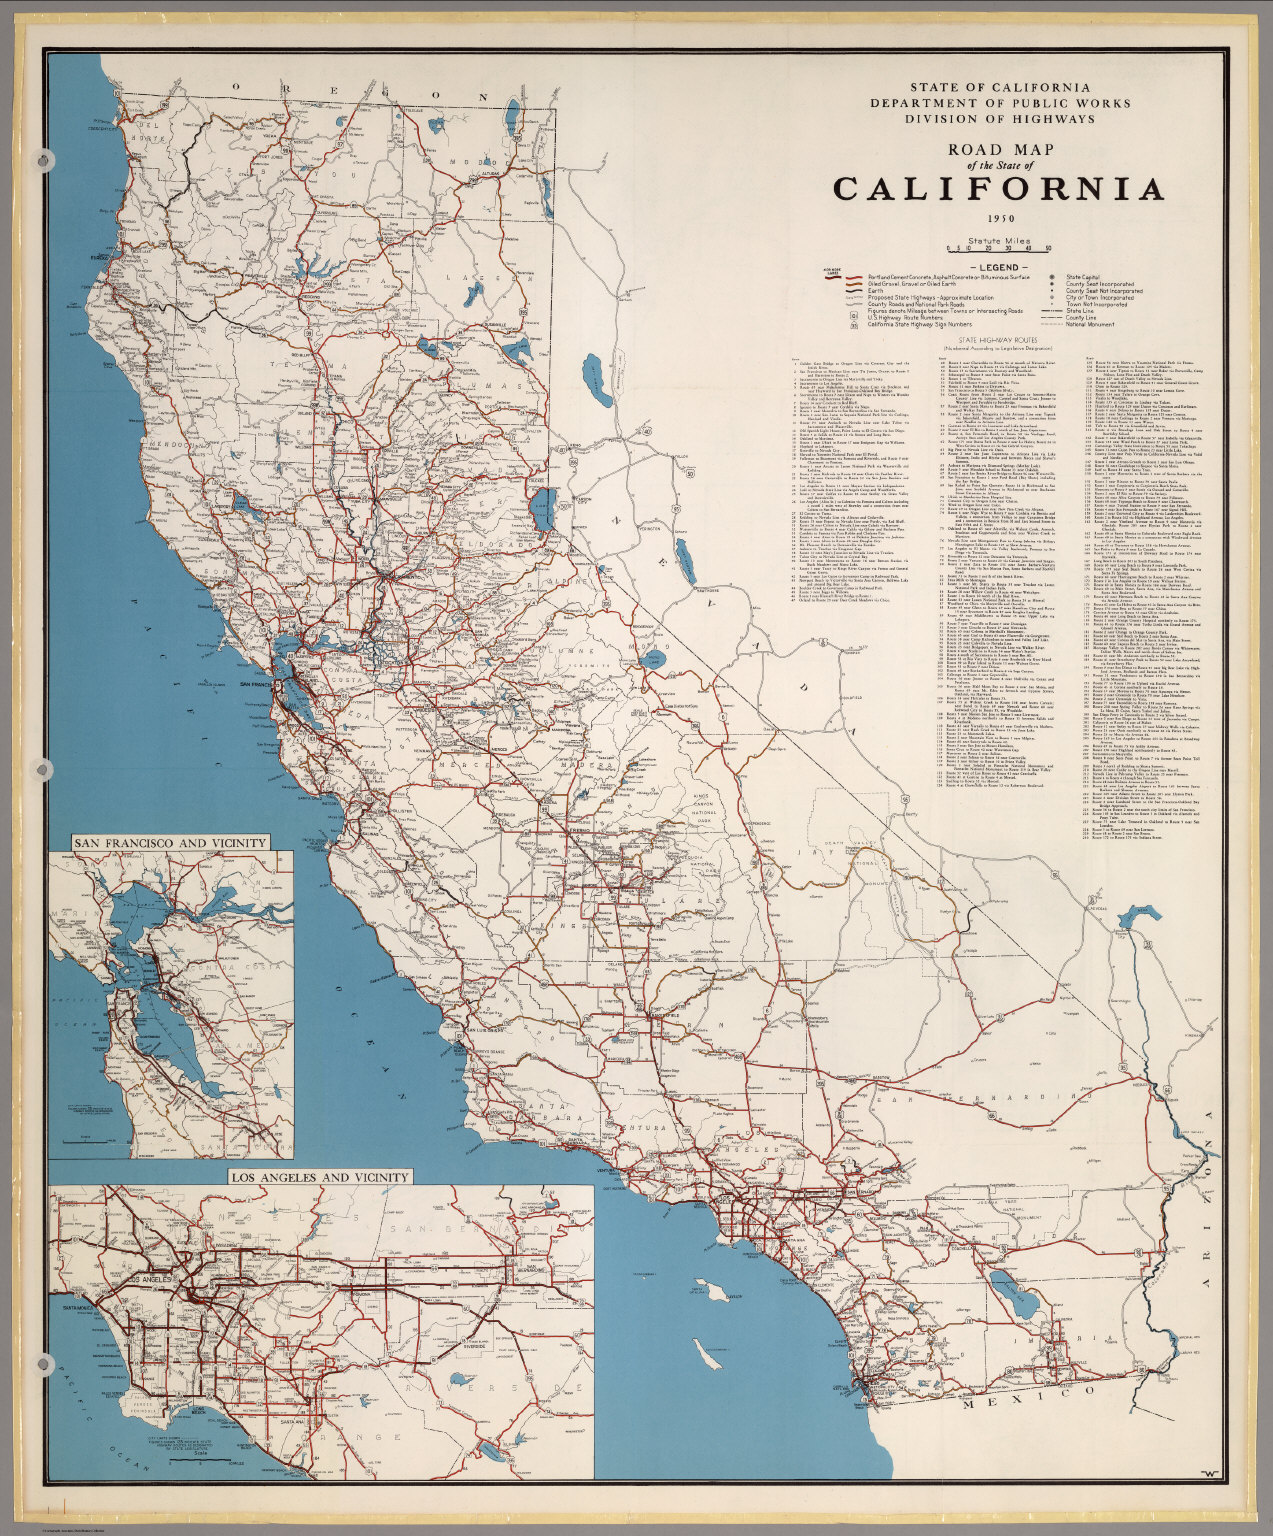 Road Map of the State of California 1950 David Rumsey – State Road Maps